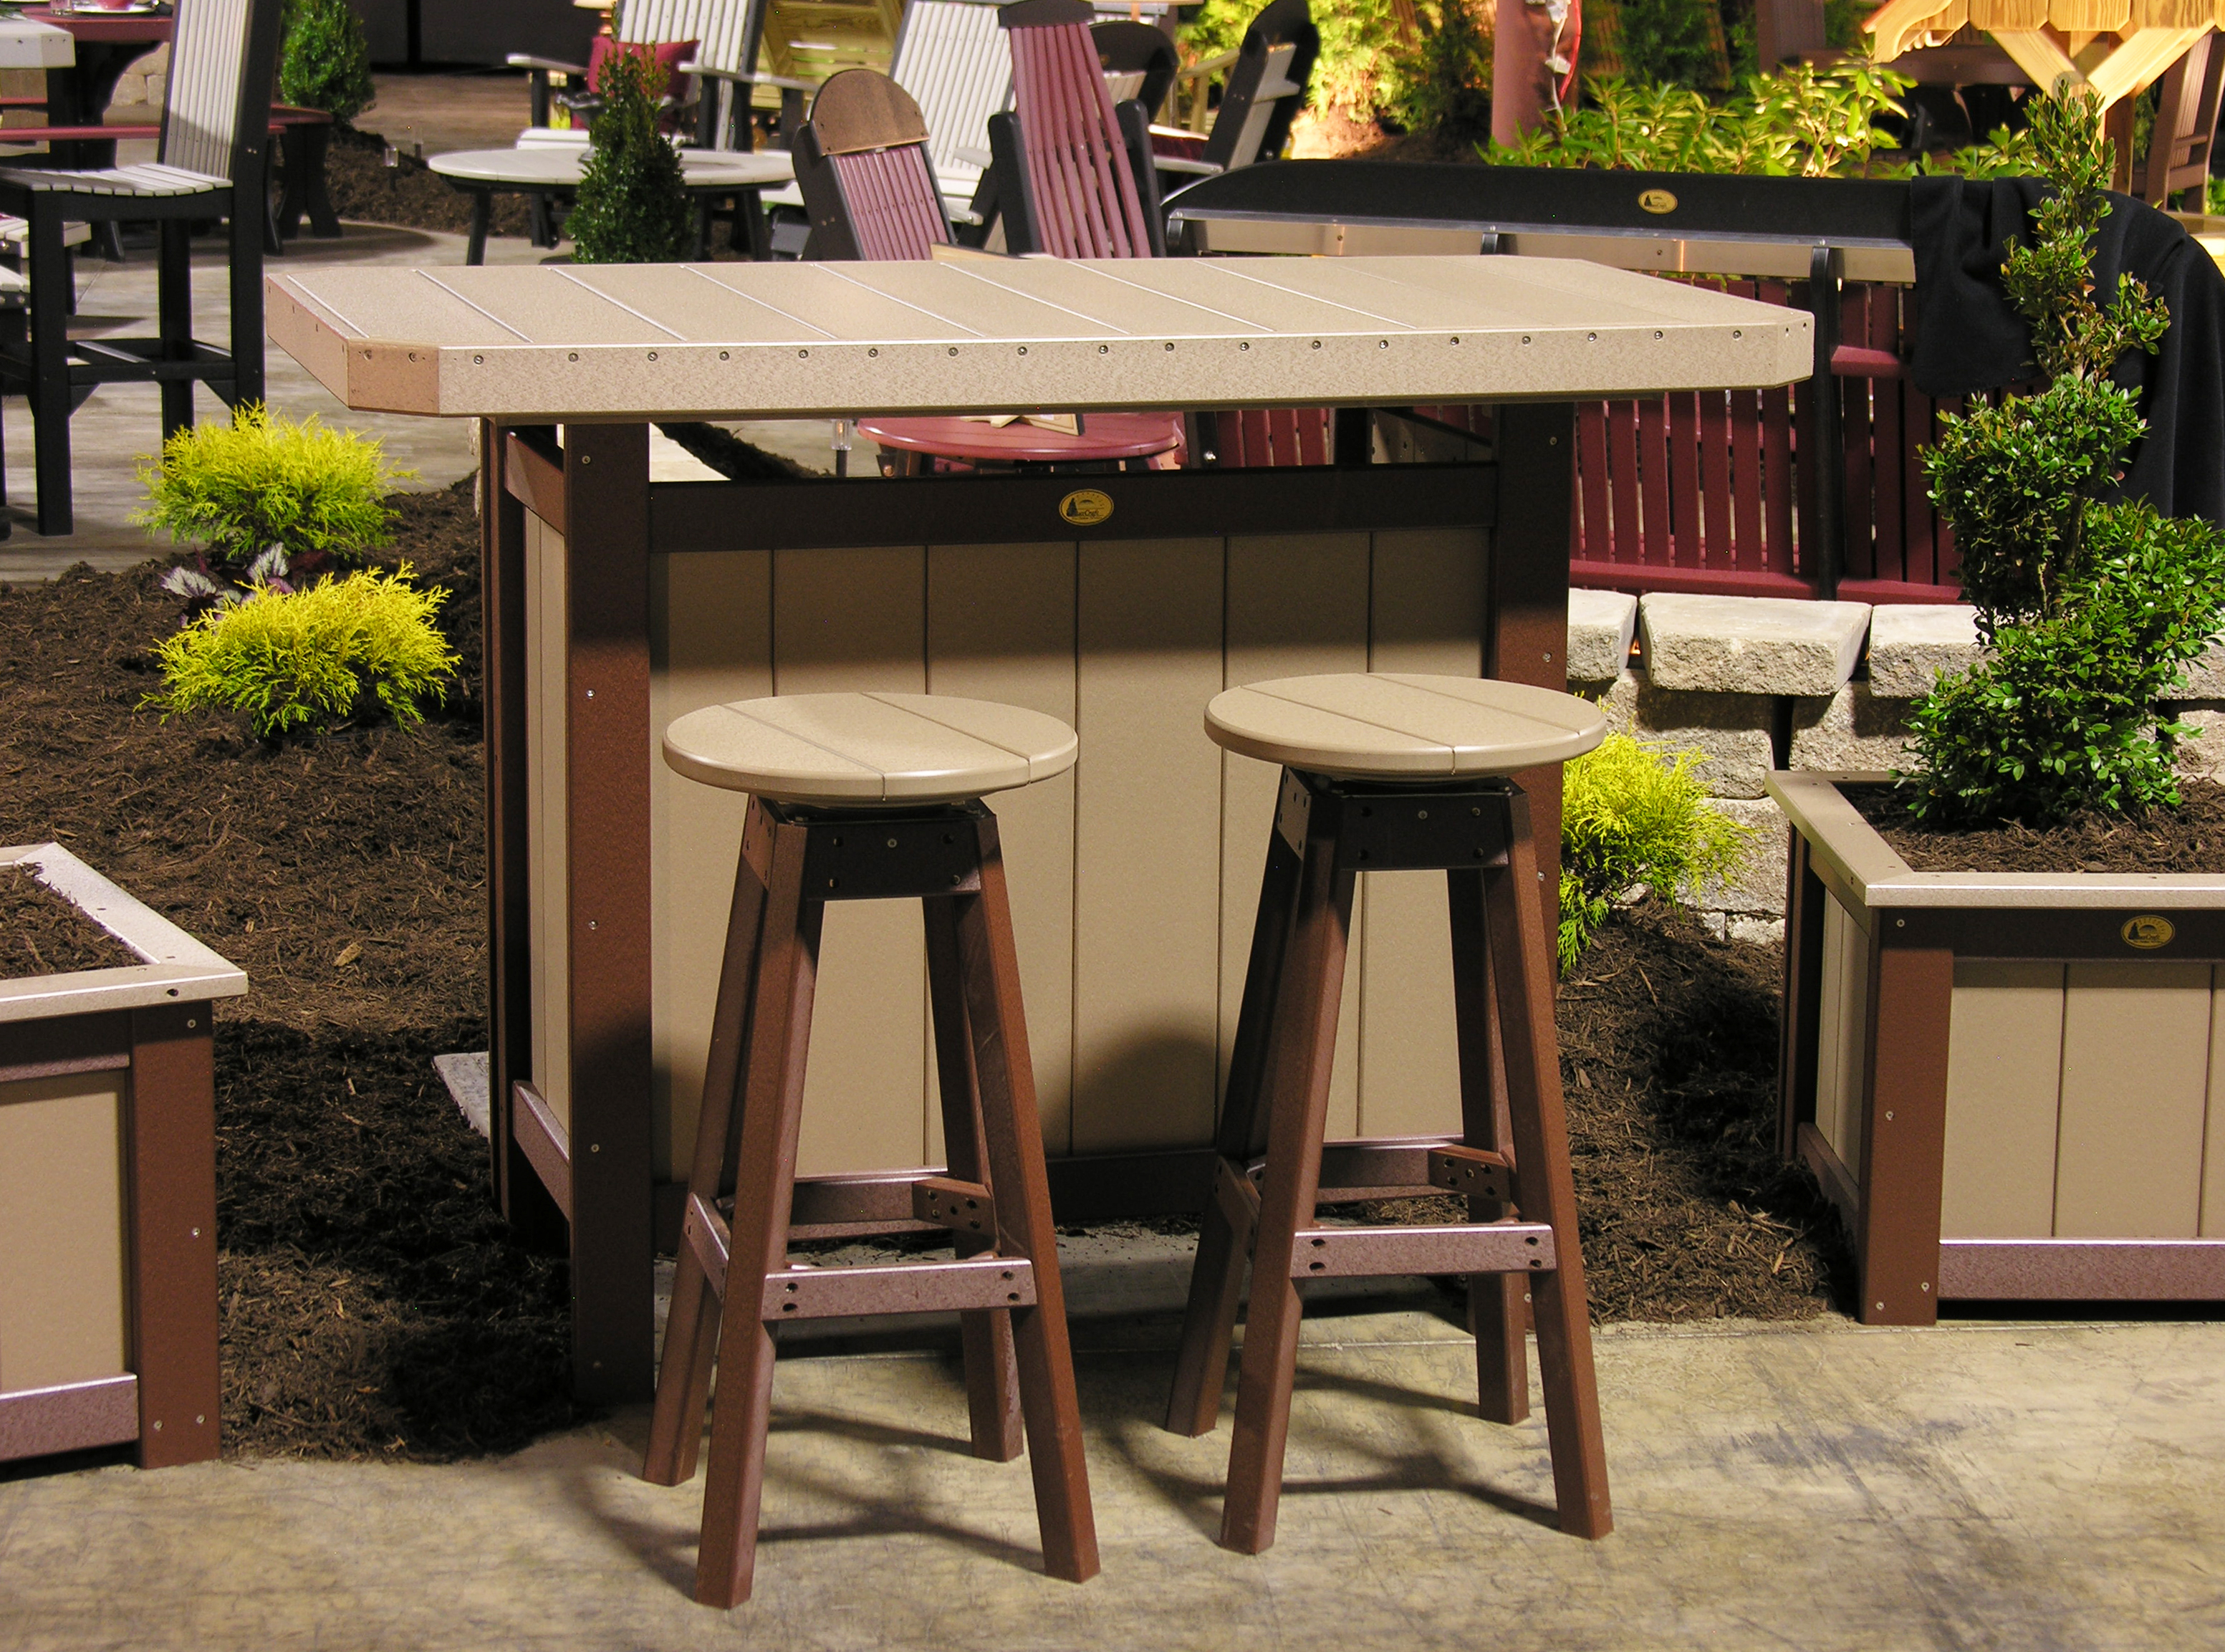 serving bar ww chestnut brown tri state outdoor products llc